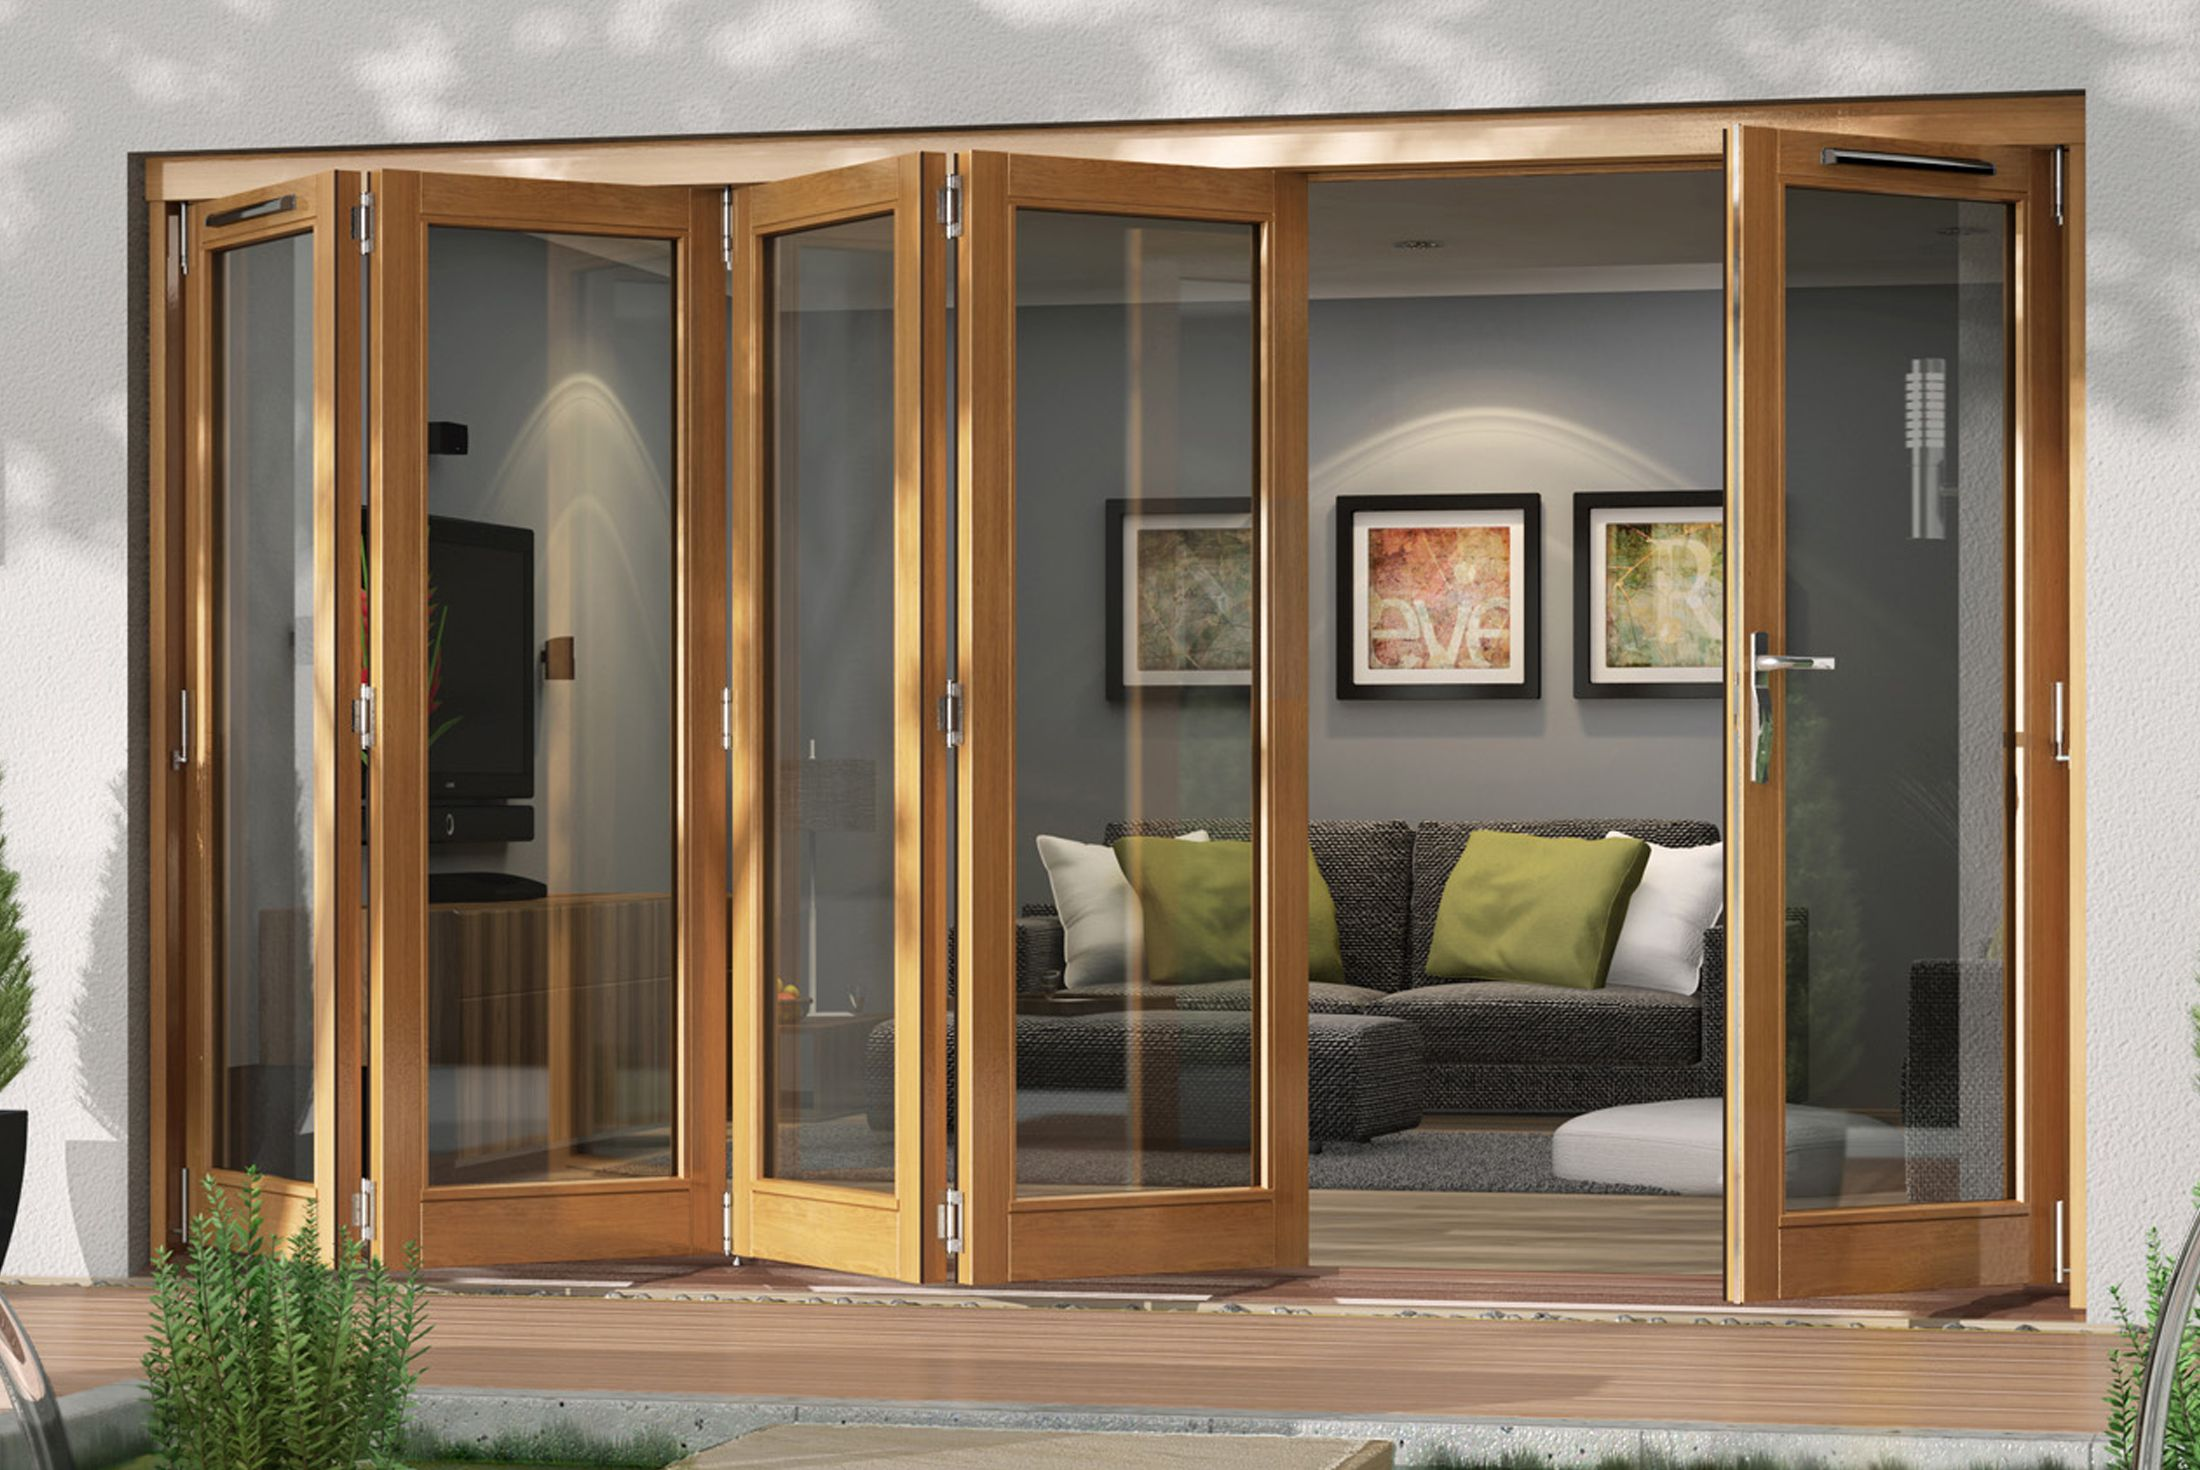 Phenomenal Buyers Guide To Patio Doors Help Ideas Diy At Bq Largest Home Design Picture Inspirations Pitcheantrous